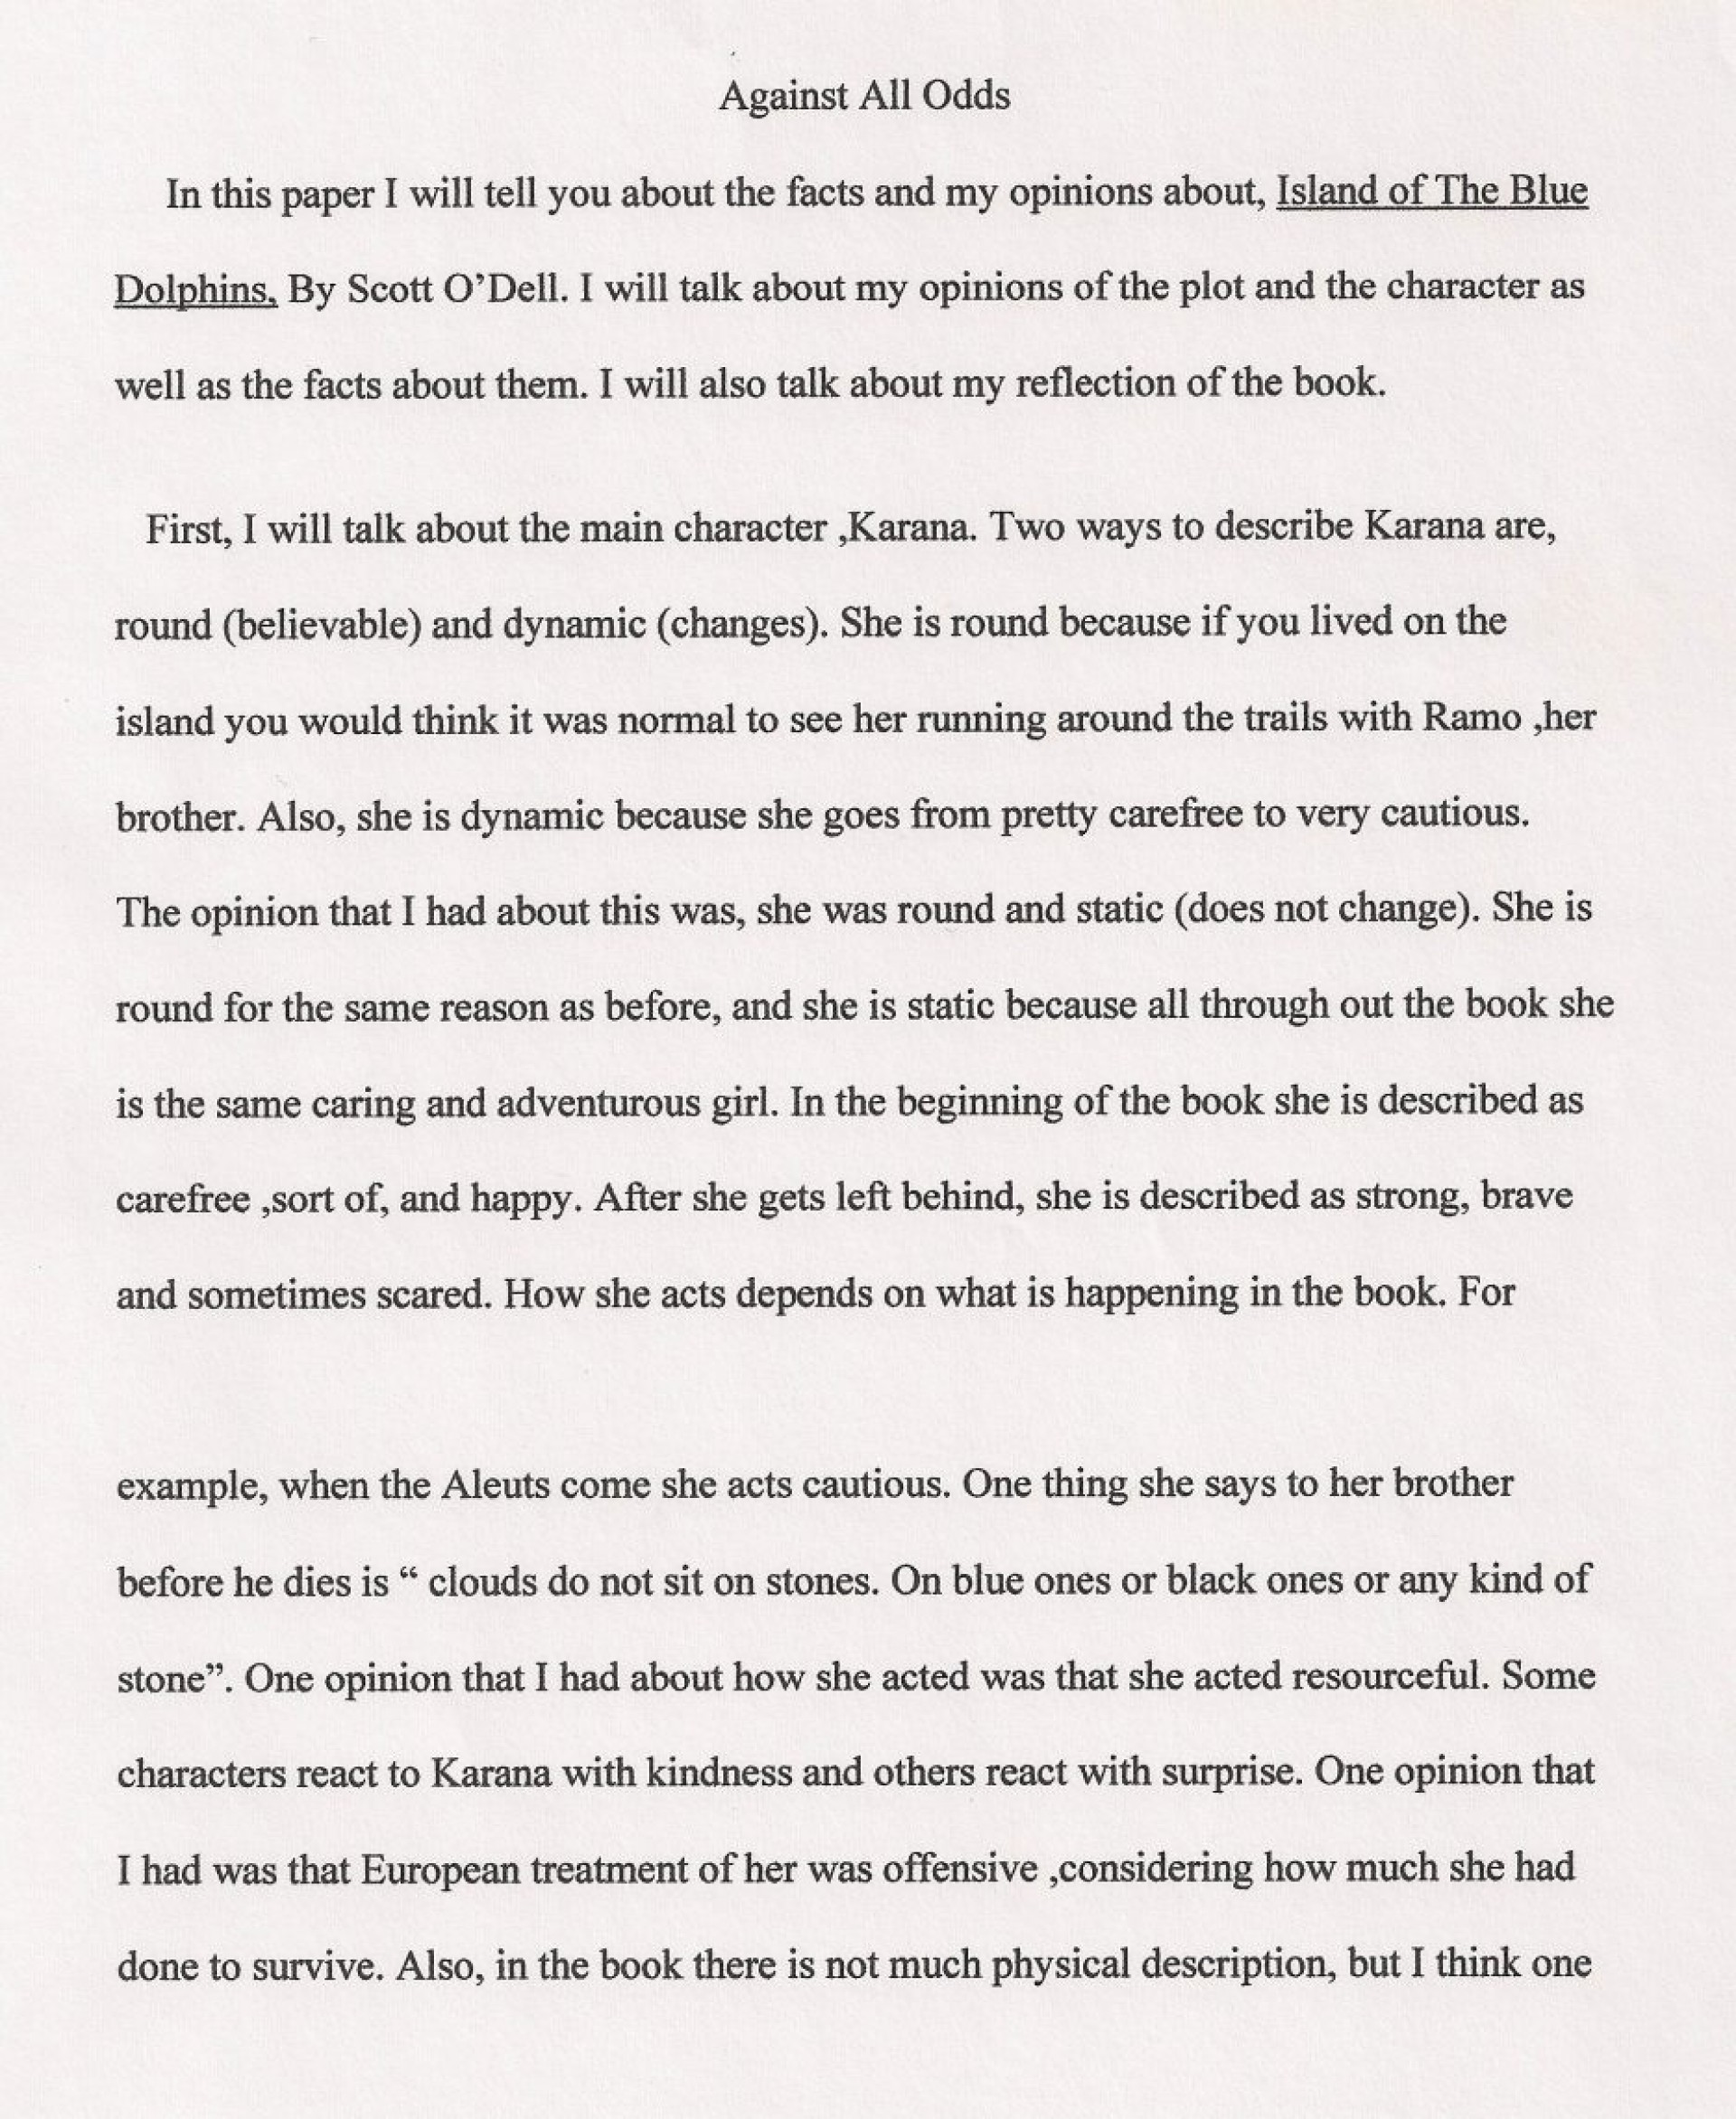 002 Taking Risks Essay Against All Odds Thesis Persuasive College In Life On Expository Benefits Of Example Business Writing About Top Narrative 1920